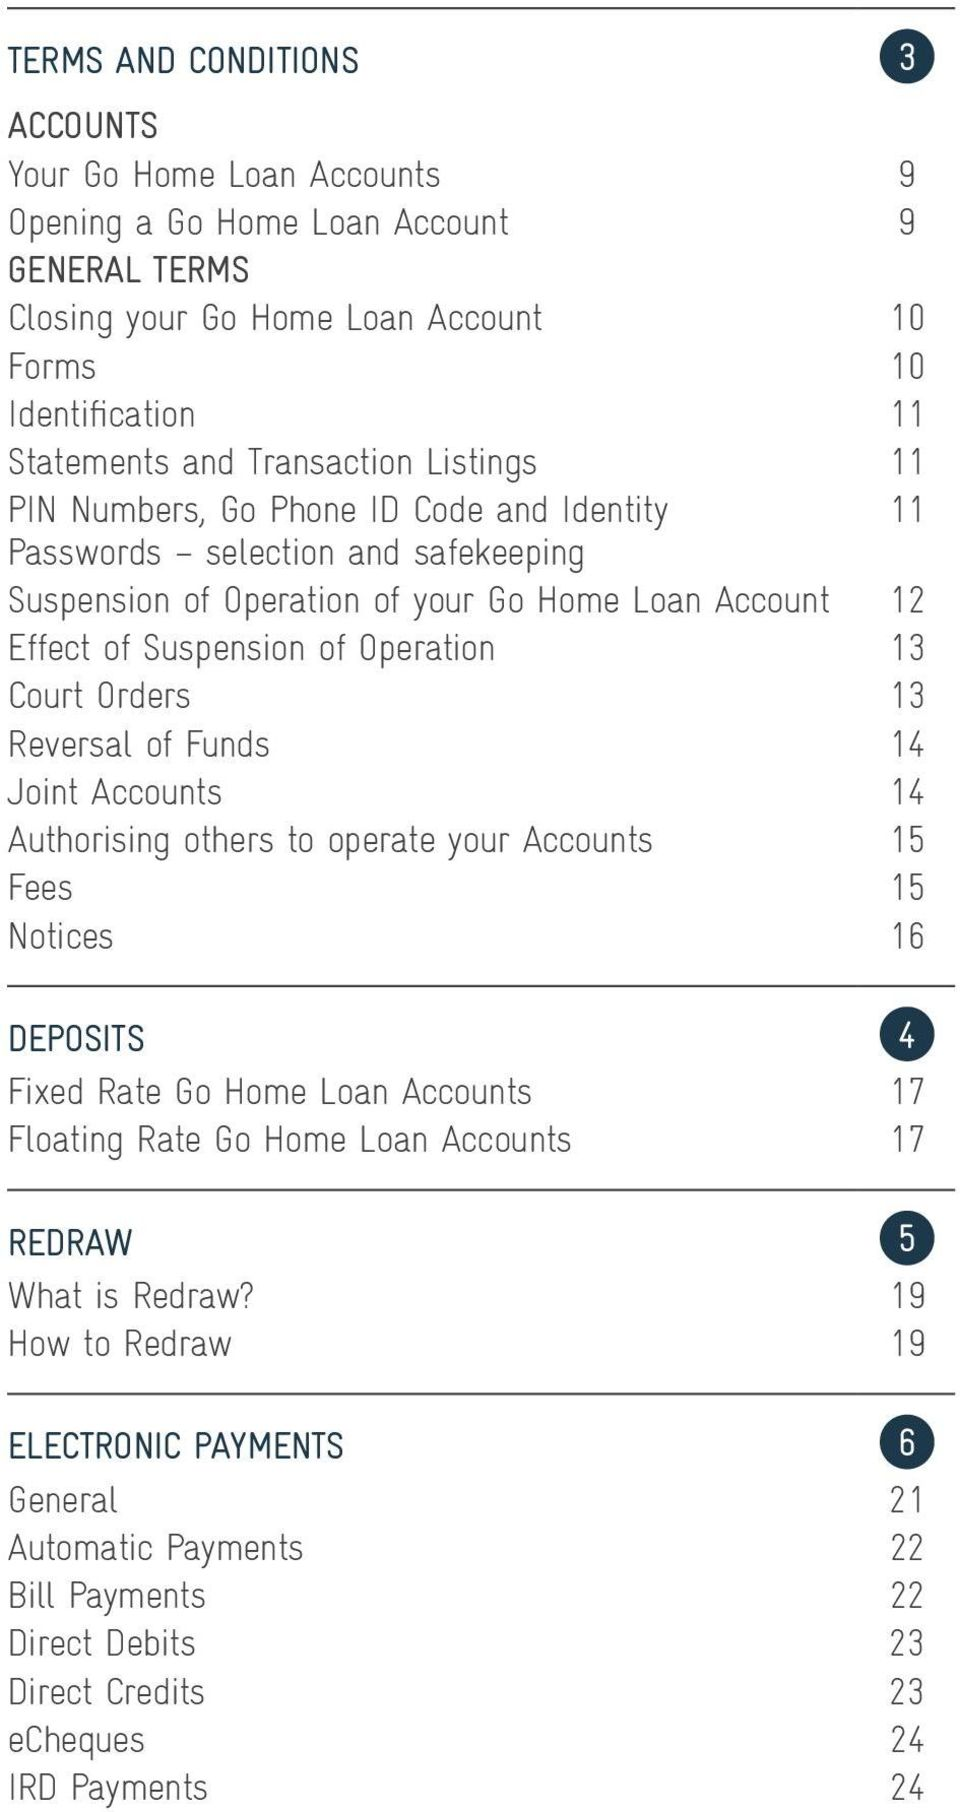 Operation 13 Court Orders 13 Reversal of Funds 14 Joint Accounts 14 Authorising others to operate your Accounts 15 Fees 15 Notices 16 DEPOSITS 4 Fixed Rate Go Home Loan Accounts 17 Floating